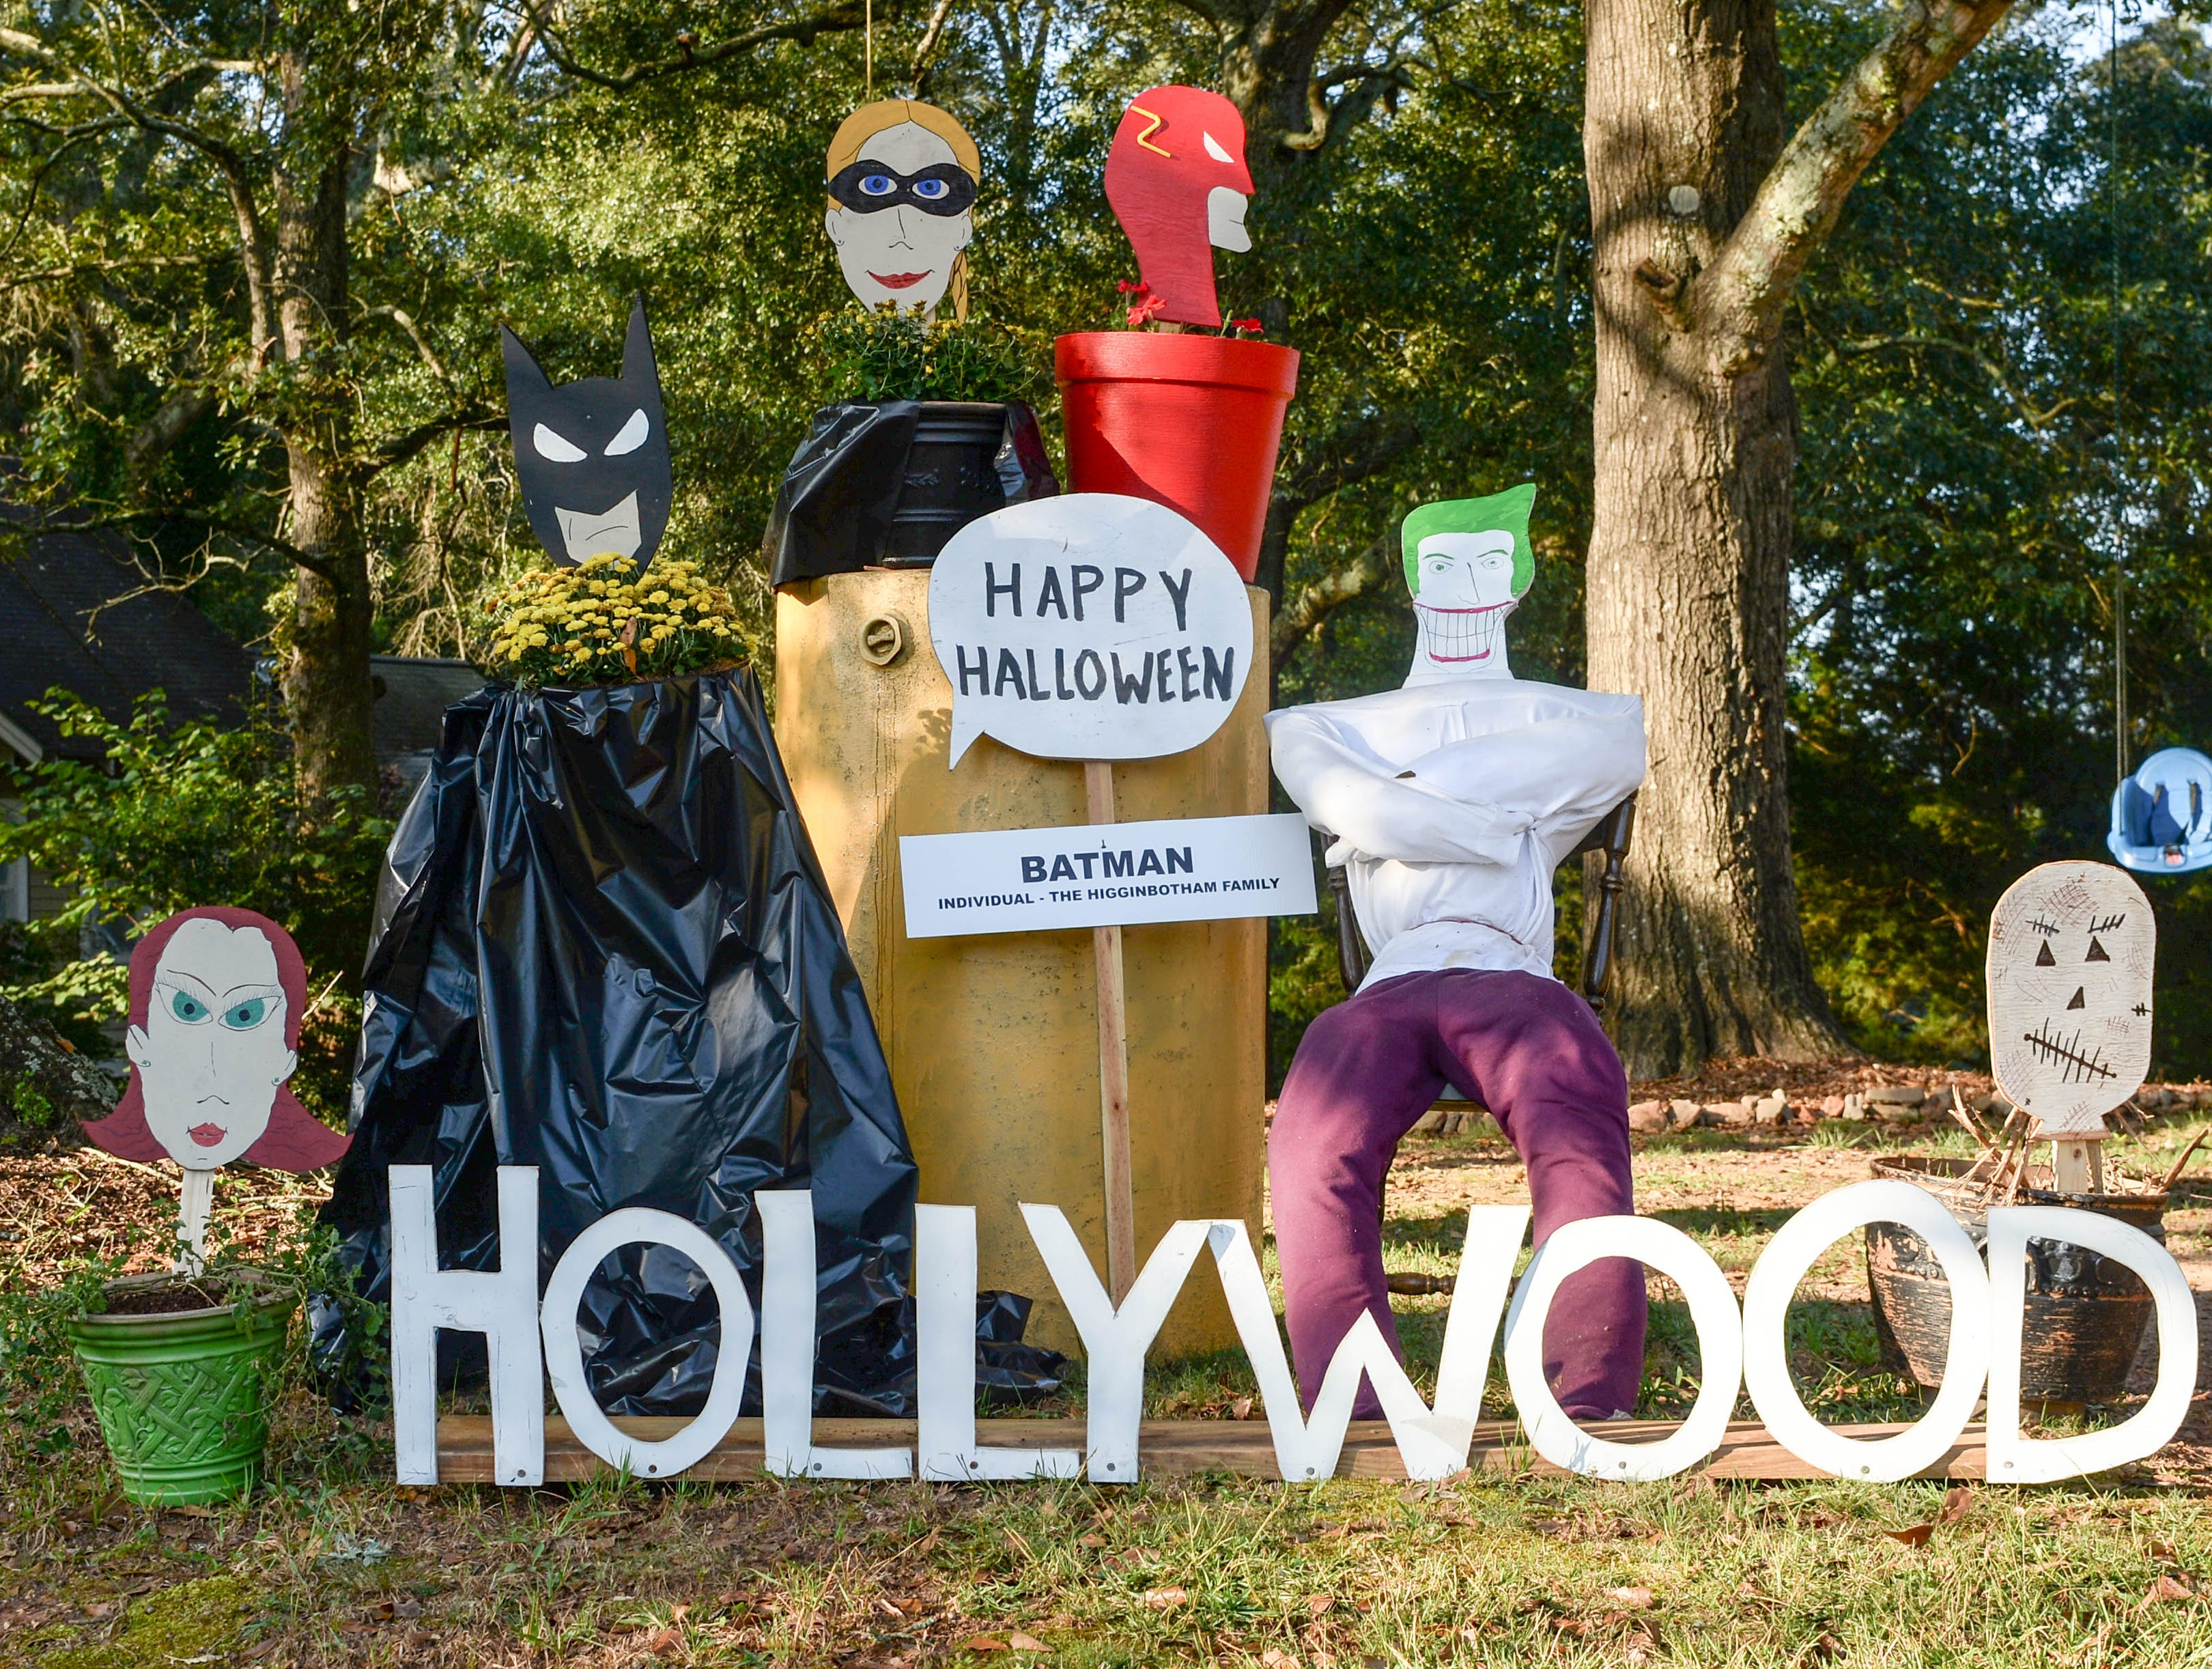 """""""Batman"""", by the Higginbotham family, is one of many displays in The Pendleton Scarecrow Contest leading up to the 20th Fall Harvest Festival in the village green Saturday, October 6 from 10 a.m. to 5 p.m. The annual contest in Pendleton for businesses, individuals, groups, organizations and churches who create fun not scary Scarecrows. People driving around the downtown square can see different theme scarecrows."""